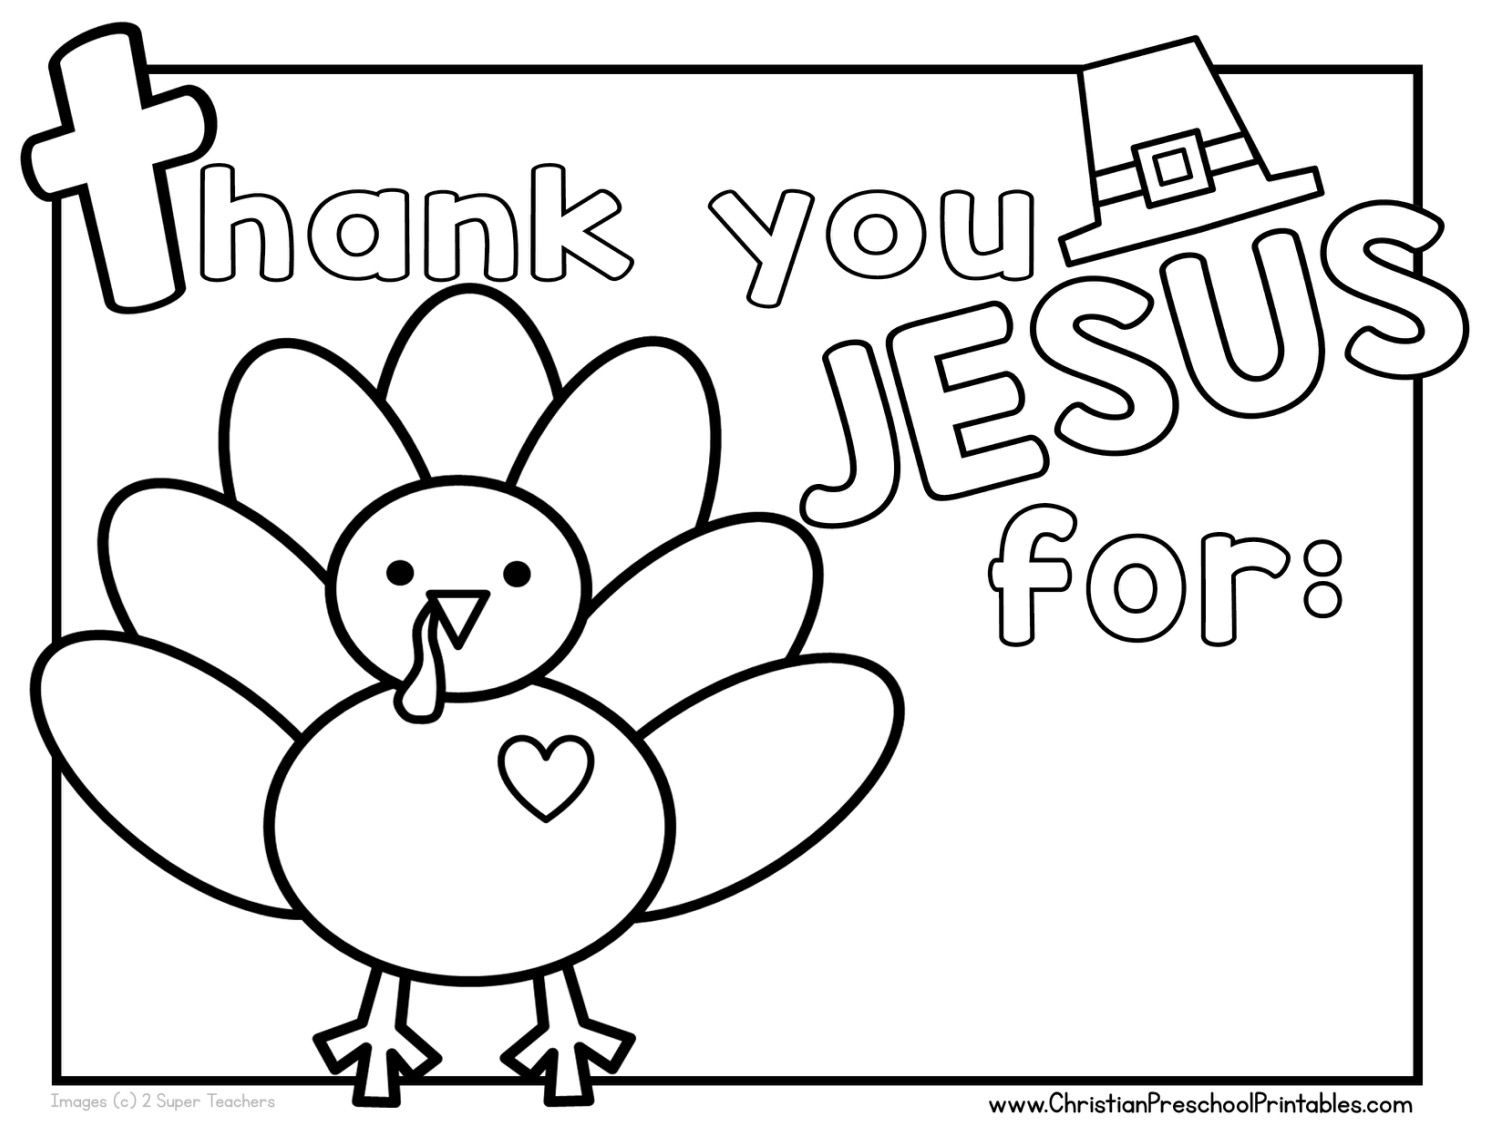 Free sunday school lessons coloring pages coloring pages for Coloring pages for sunday school preschool